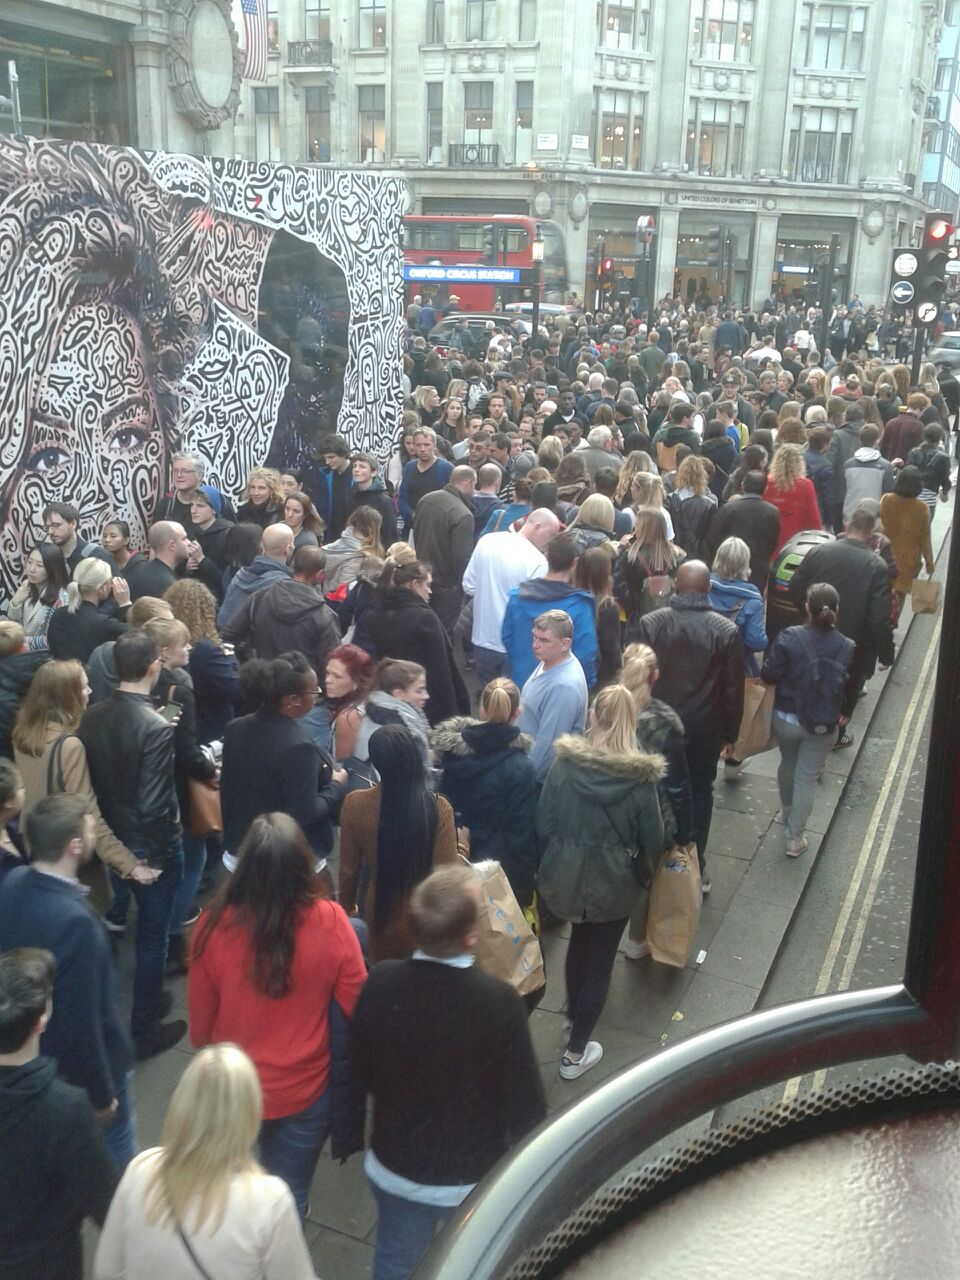 Shopping on Oxford street  London in October this year.